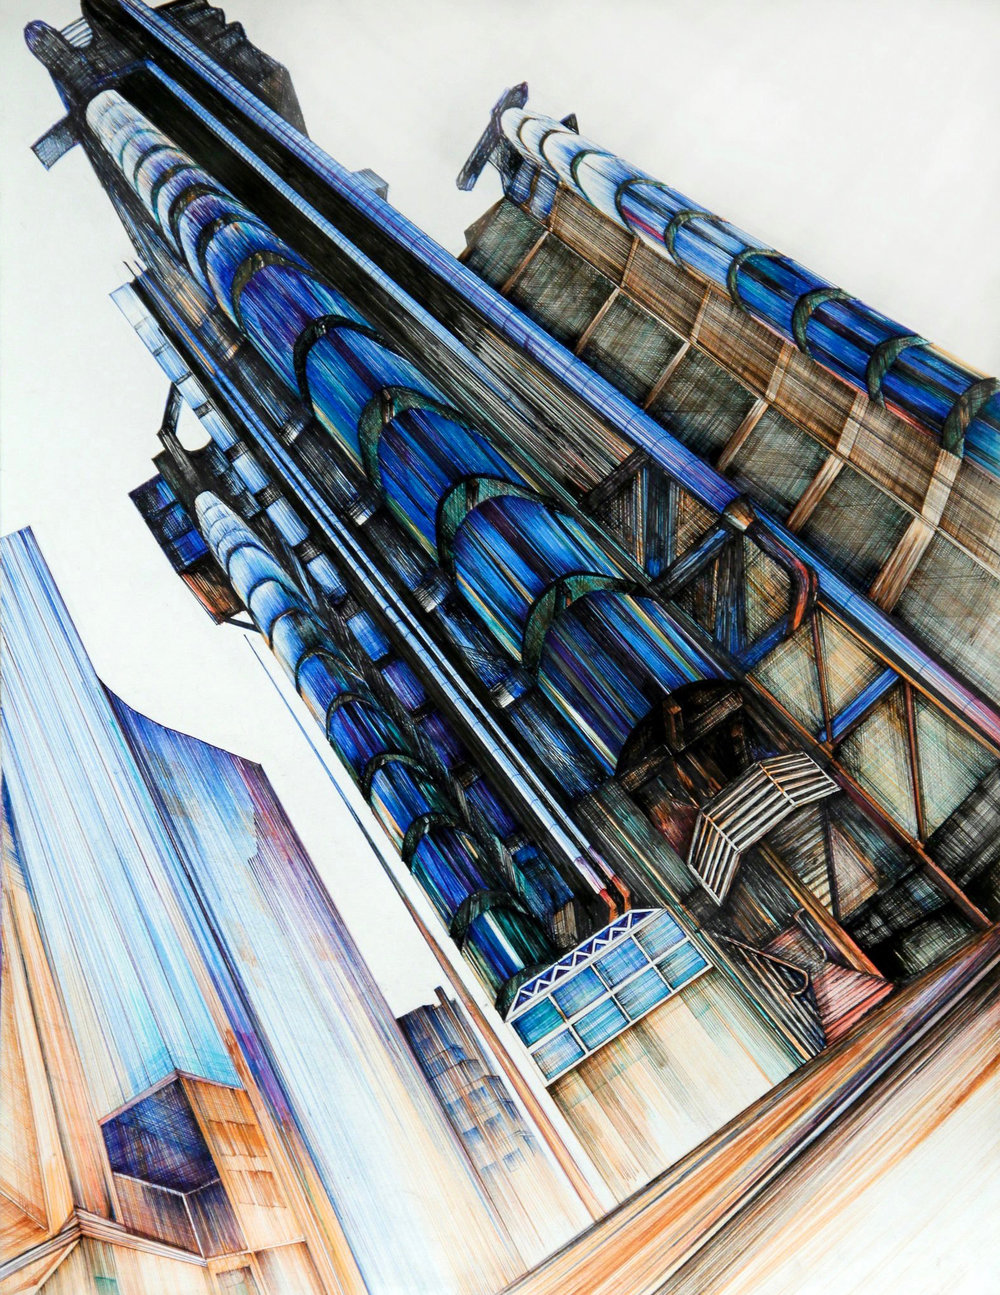 Lloyd's of London - 18' x 24' Every line in pen and ruler